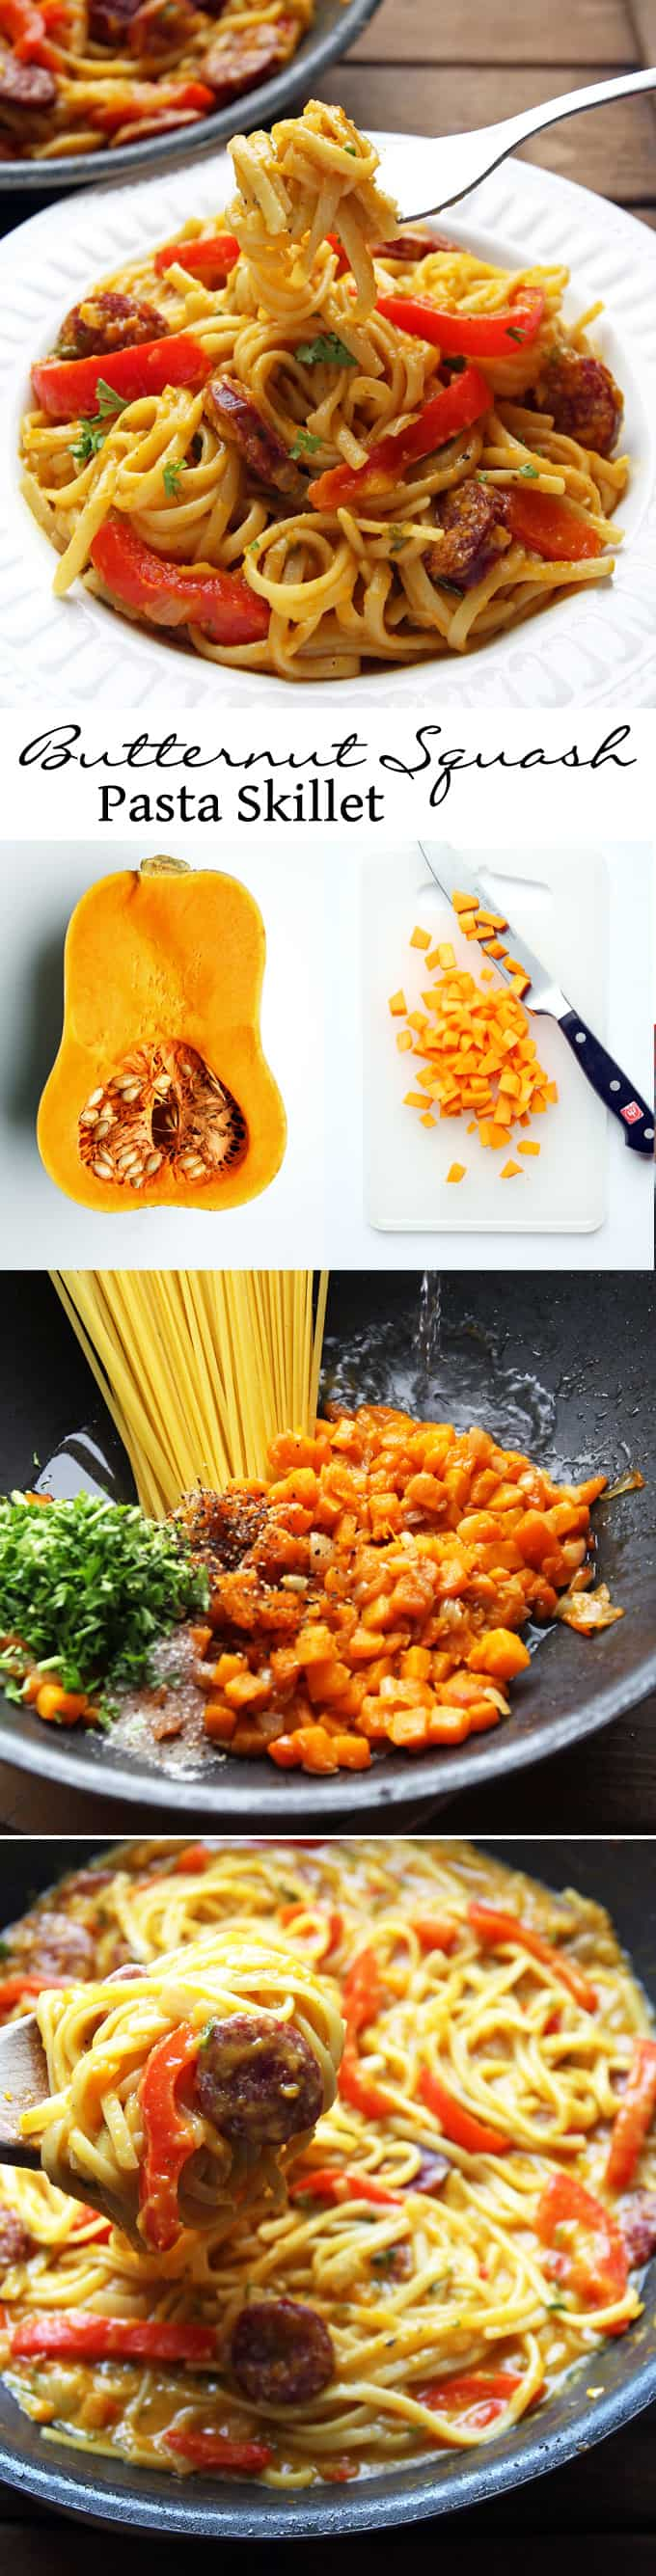 One Pan Butternut Squash Pasta with Sausage and Peppers